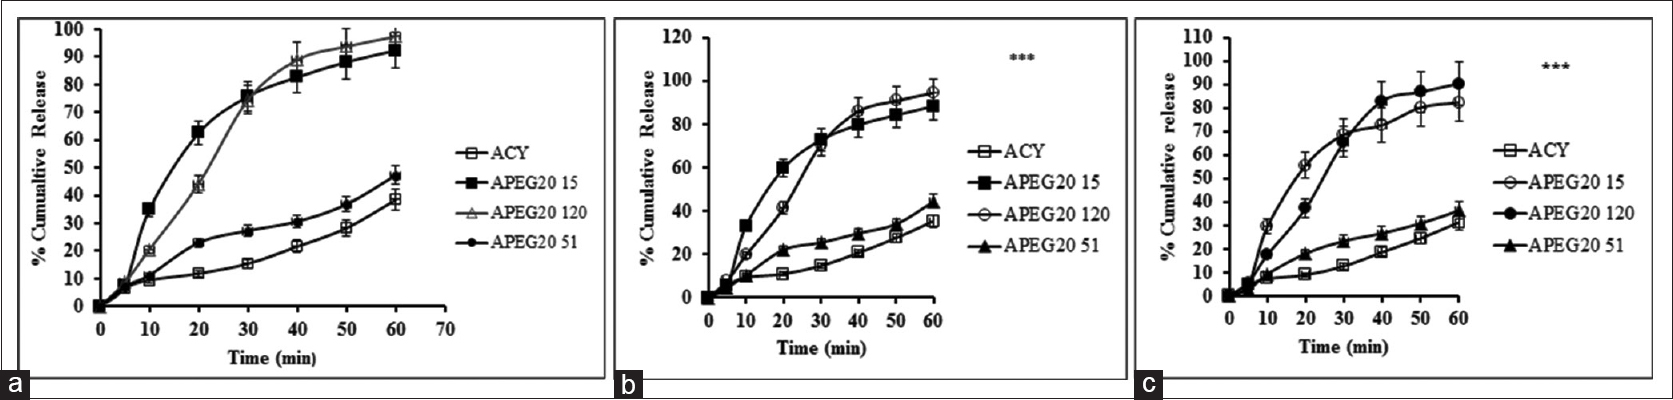 In vitro release profiles of acyclovir and solid dispersions (SDs) (a) APEG20 120 showed significant (***P < 0.001) increase in release rate compared with that of pure acyclovir, APEG20 15 and APEG20 51